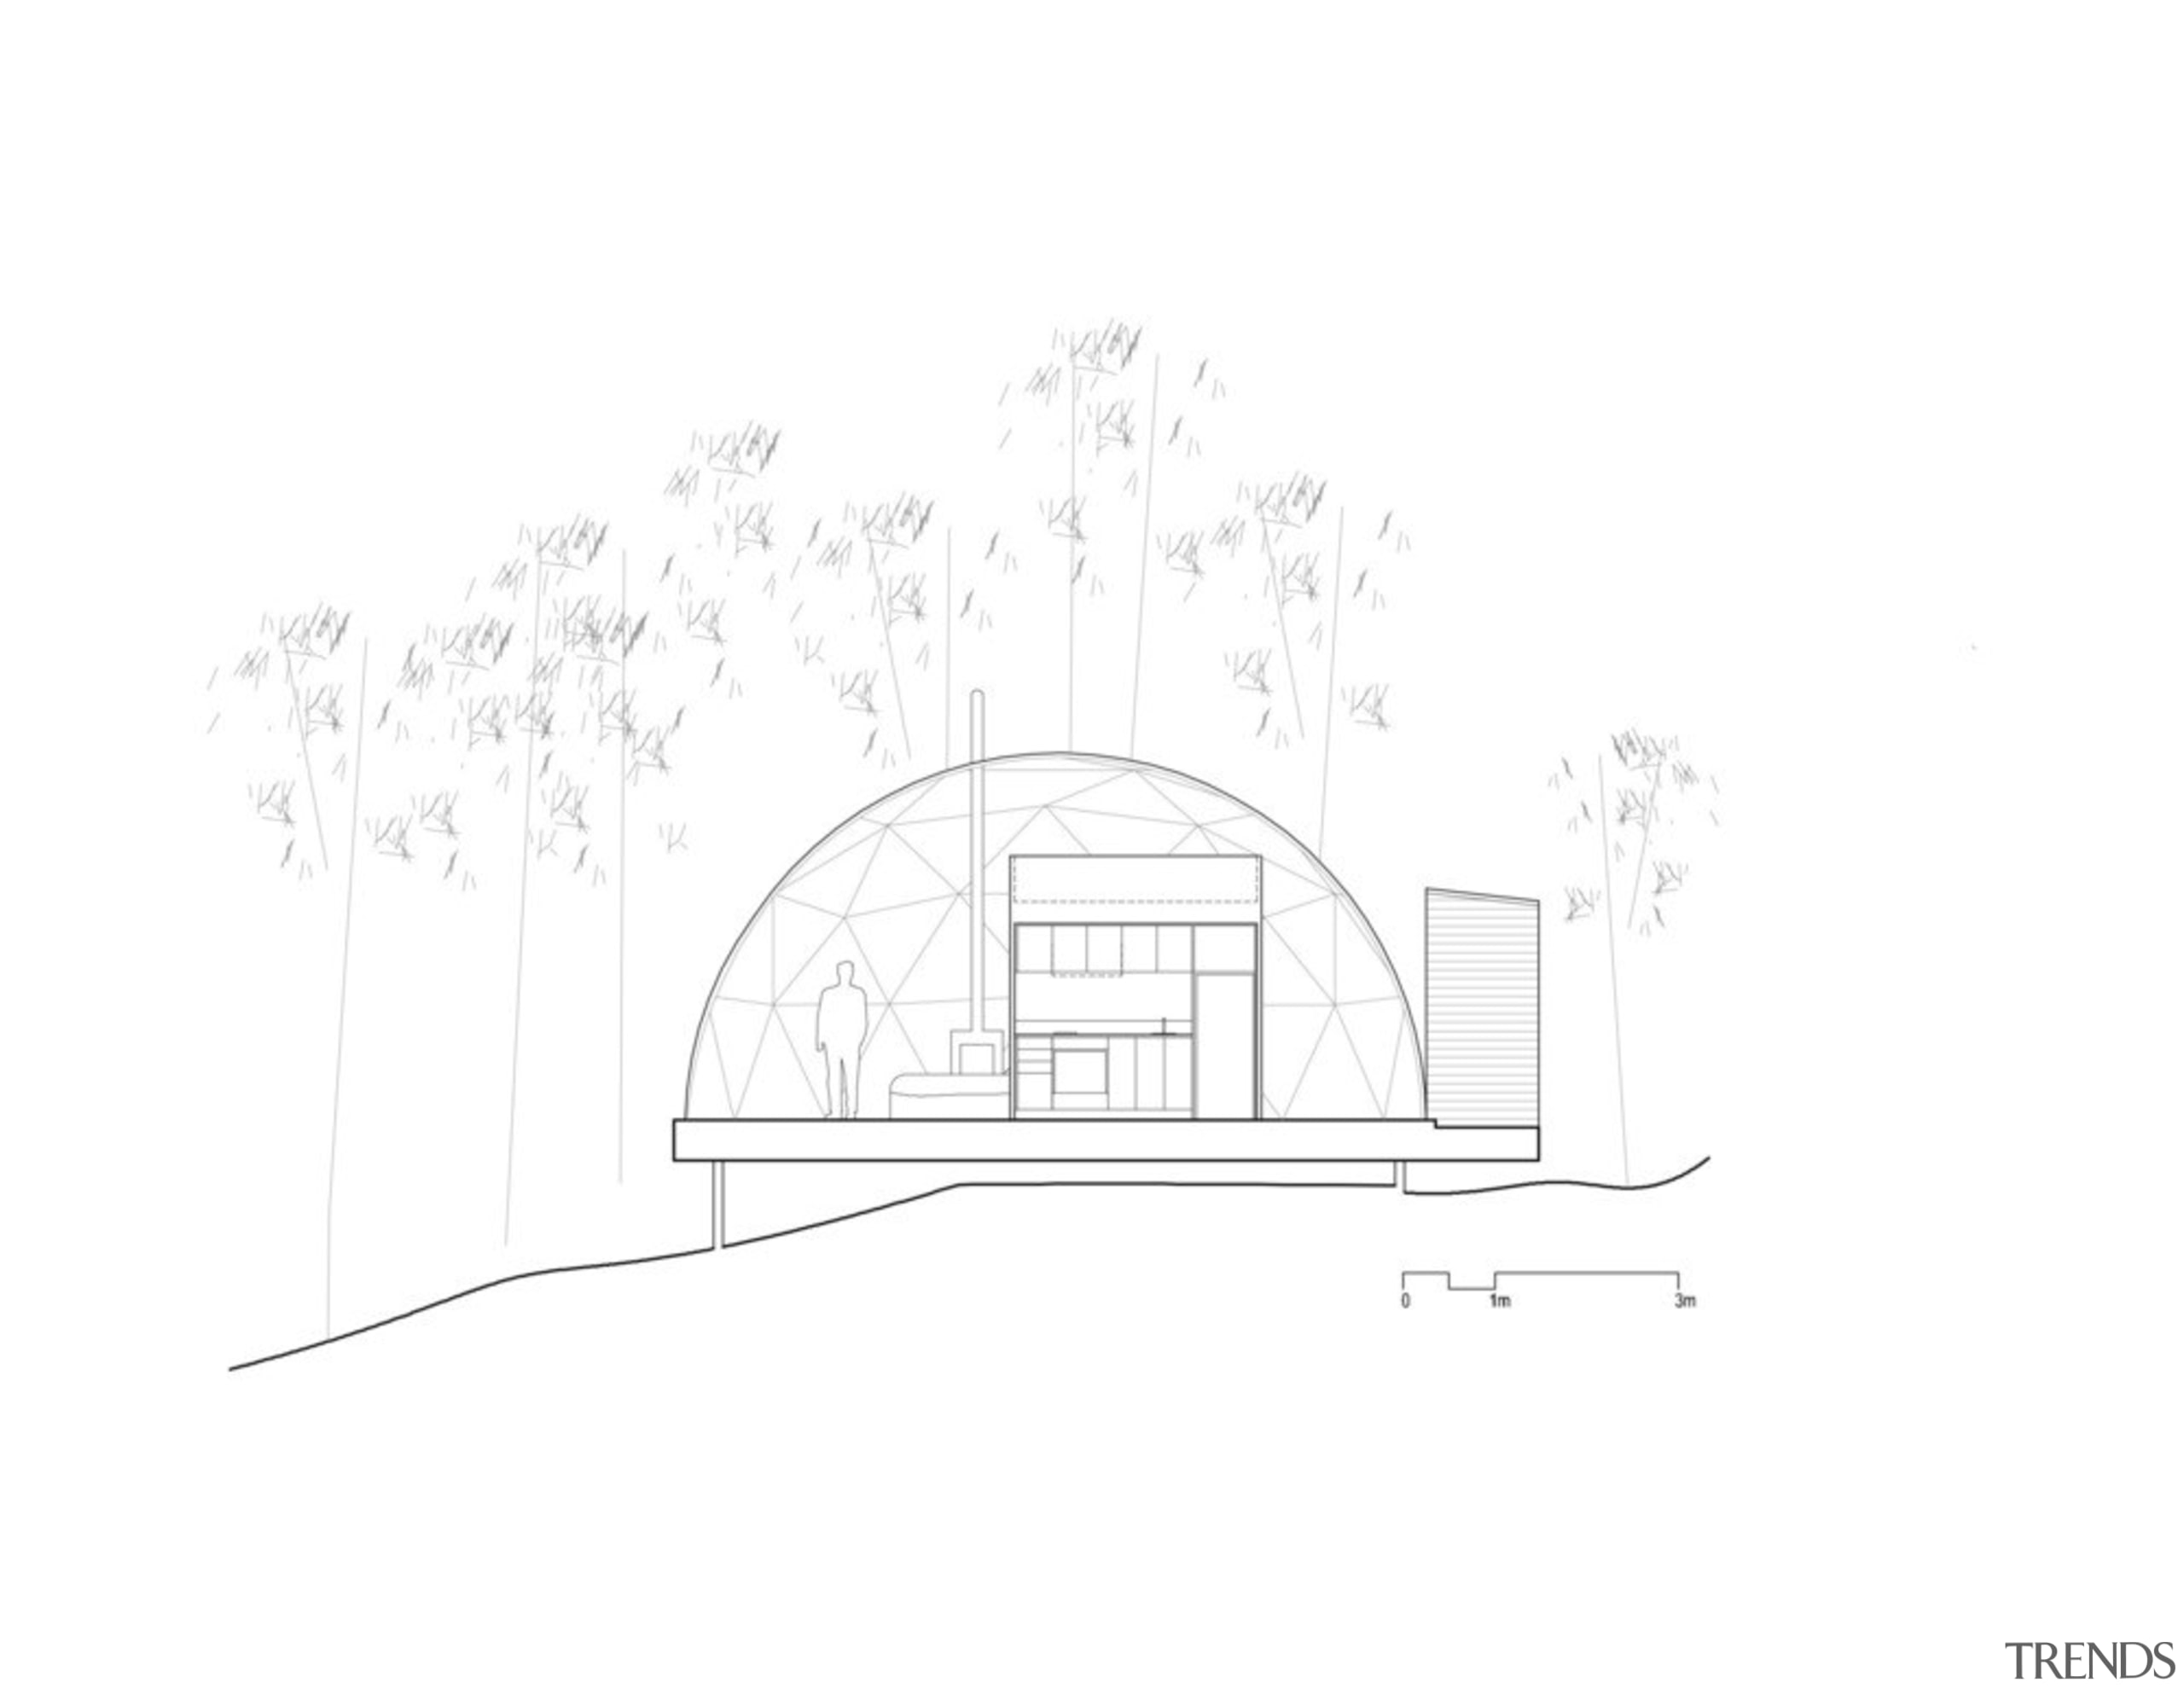 Dome 9A - angle | arch | architecture angle, arch, architecture, area, black and white, design, diagram, drawing, font, line, line art, monochrome, product, sketch, structure, text, white